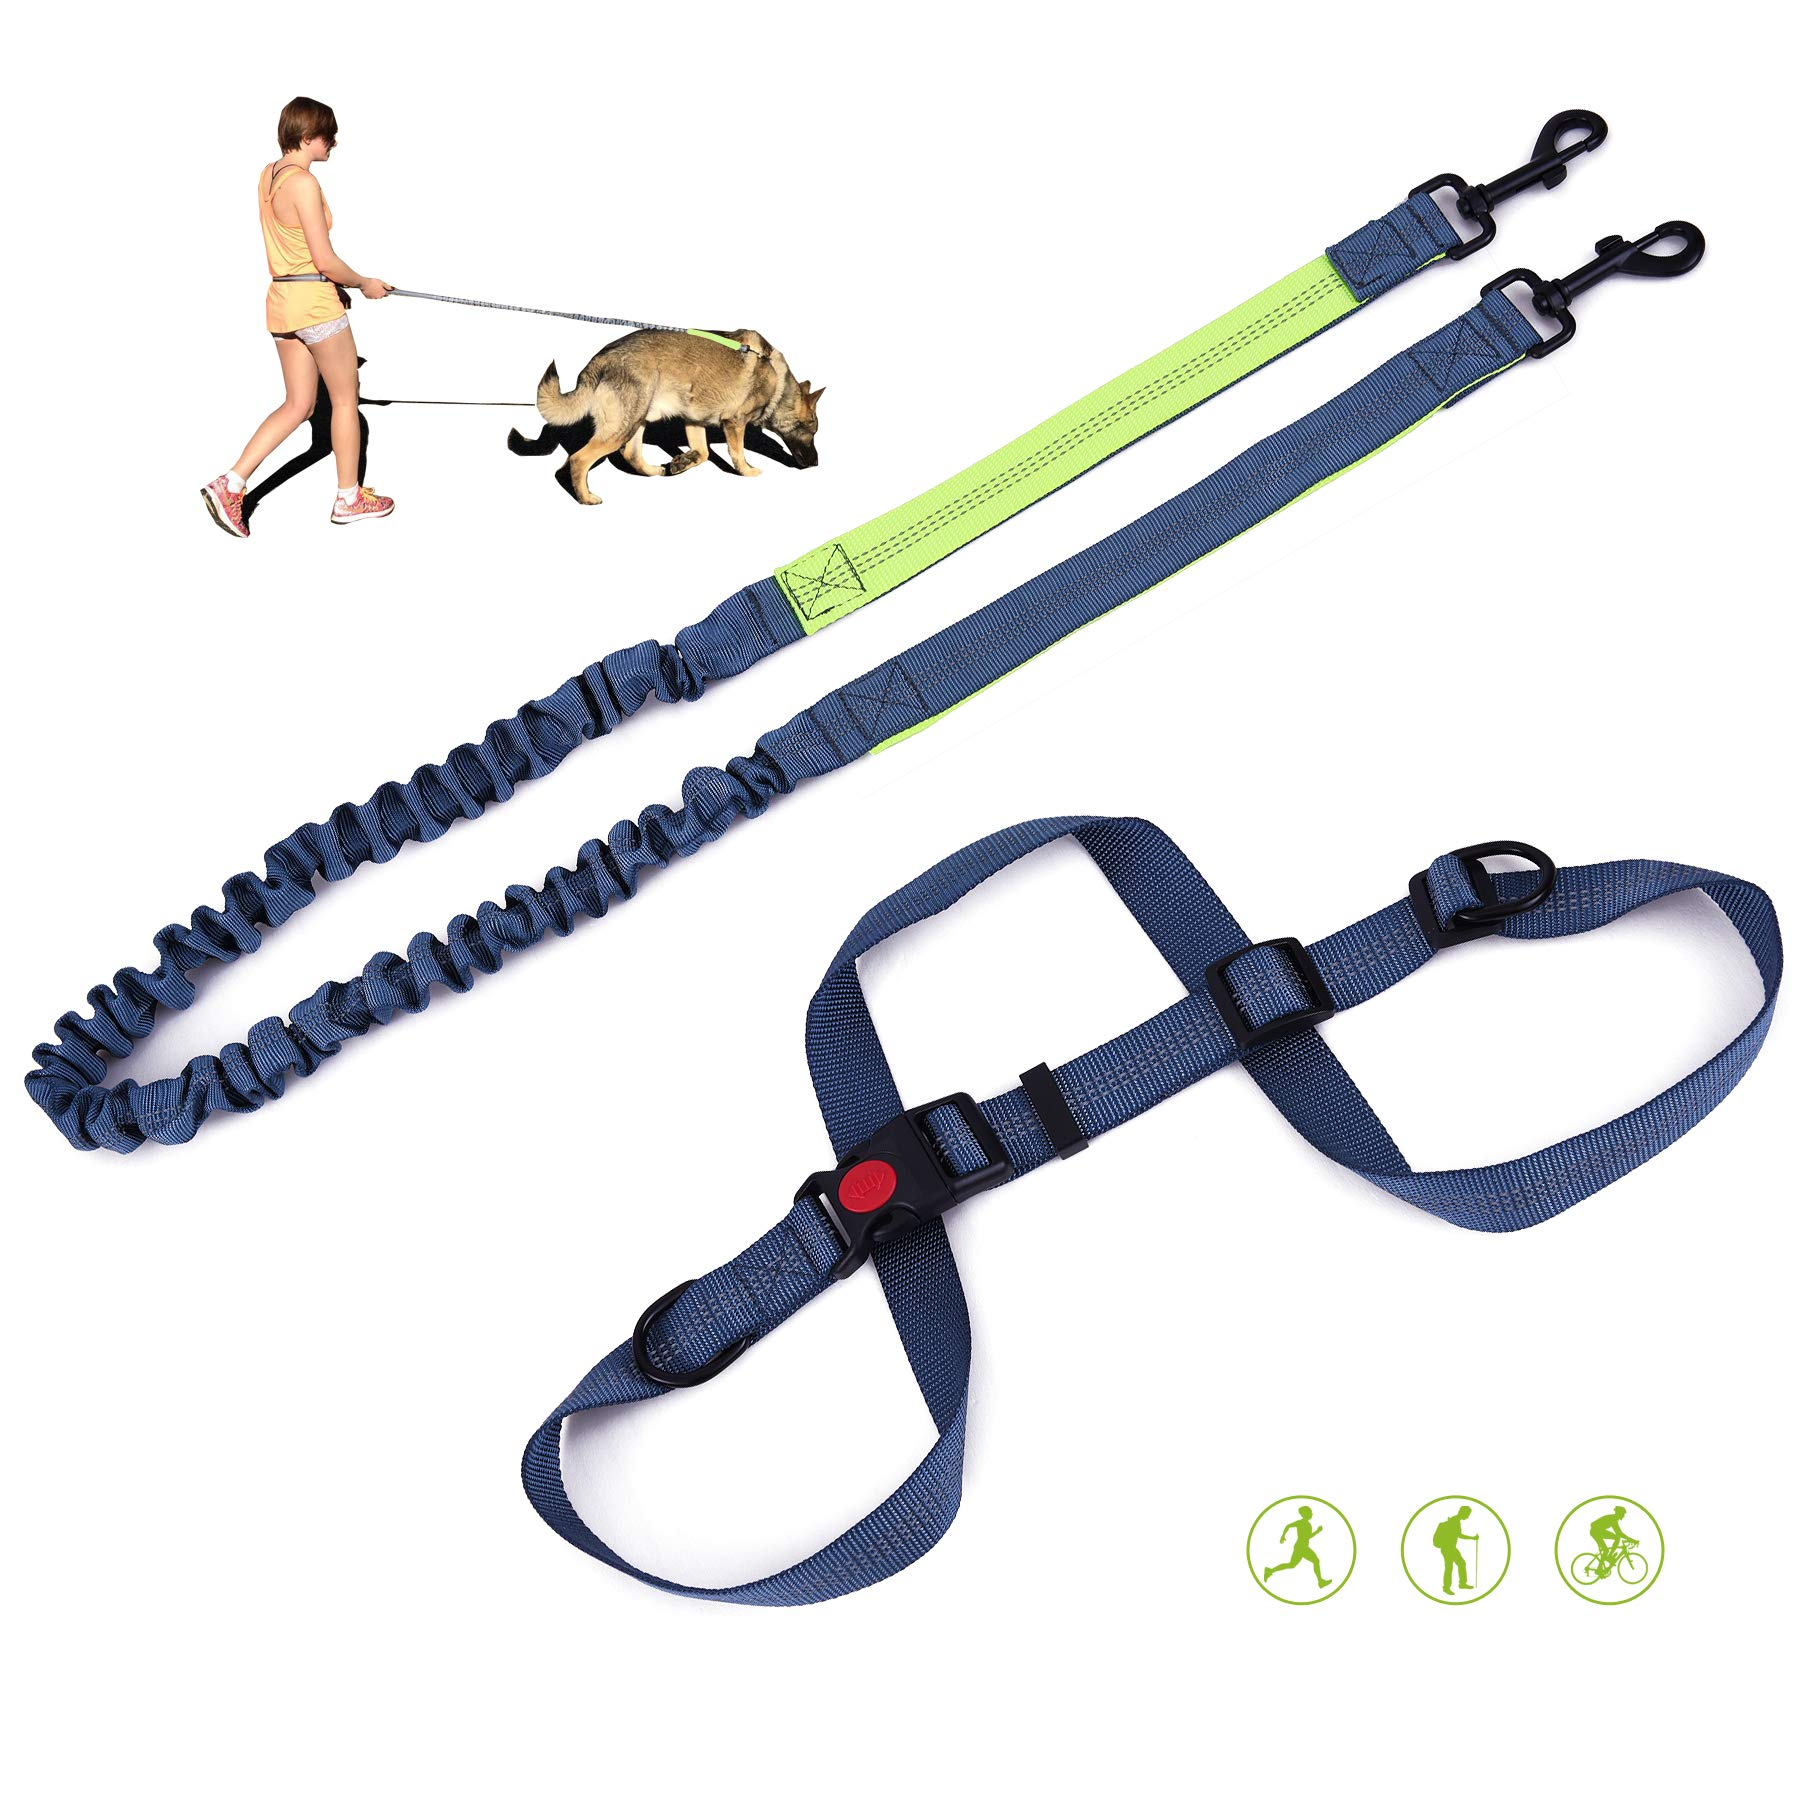 Hands Free Dog Leash with Pouch, Comfortable Dog Leash for Running Walking & Jogging, Great for Medium & Large Dogs Reflective Stitches, Adjustable Belt.(Green) by Doggo Woggo (Image #1)